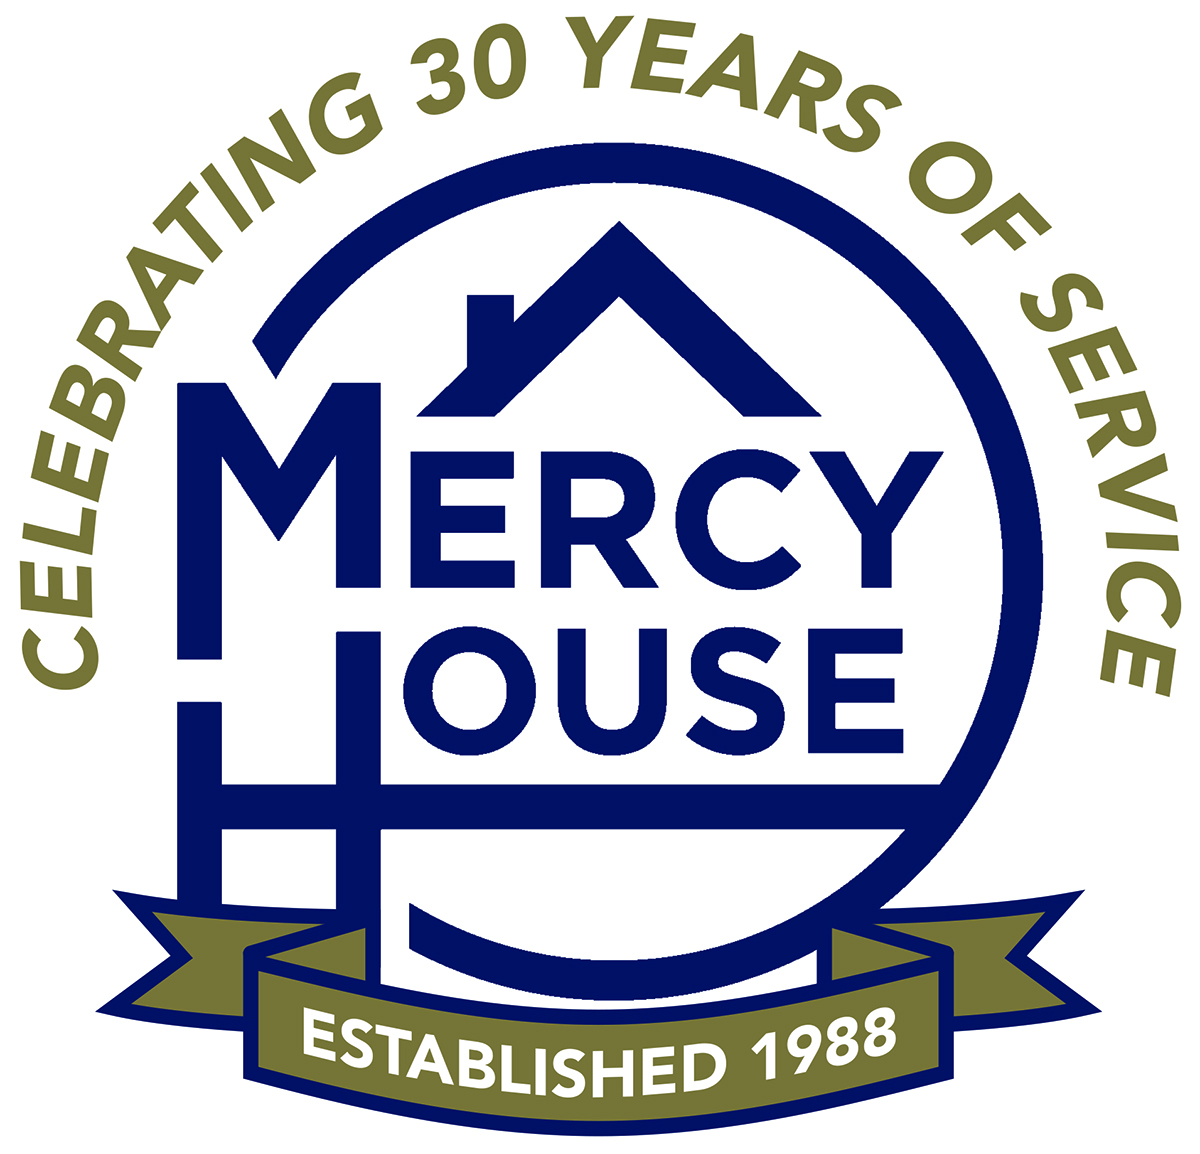 Mercy House 30 Year LOGO-Final (002).jpg